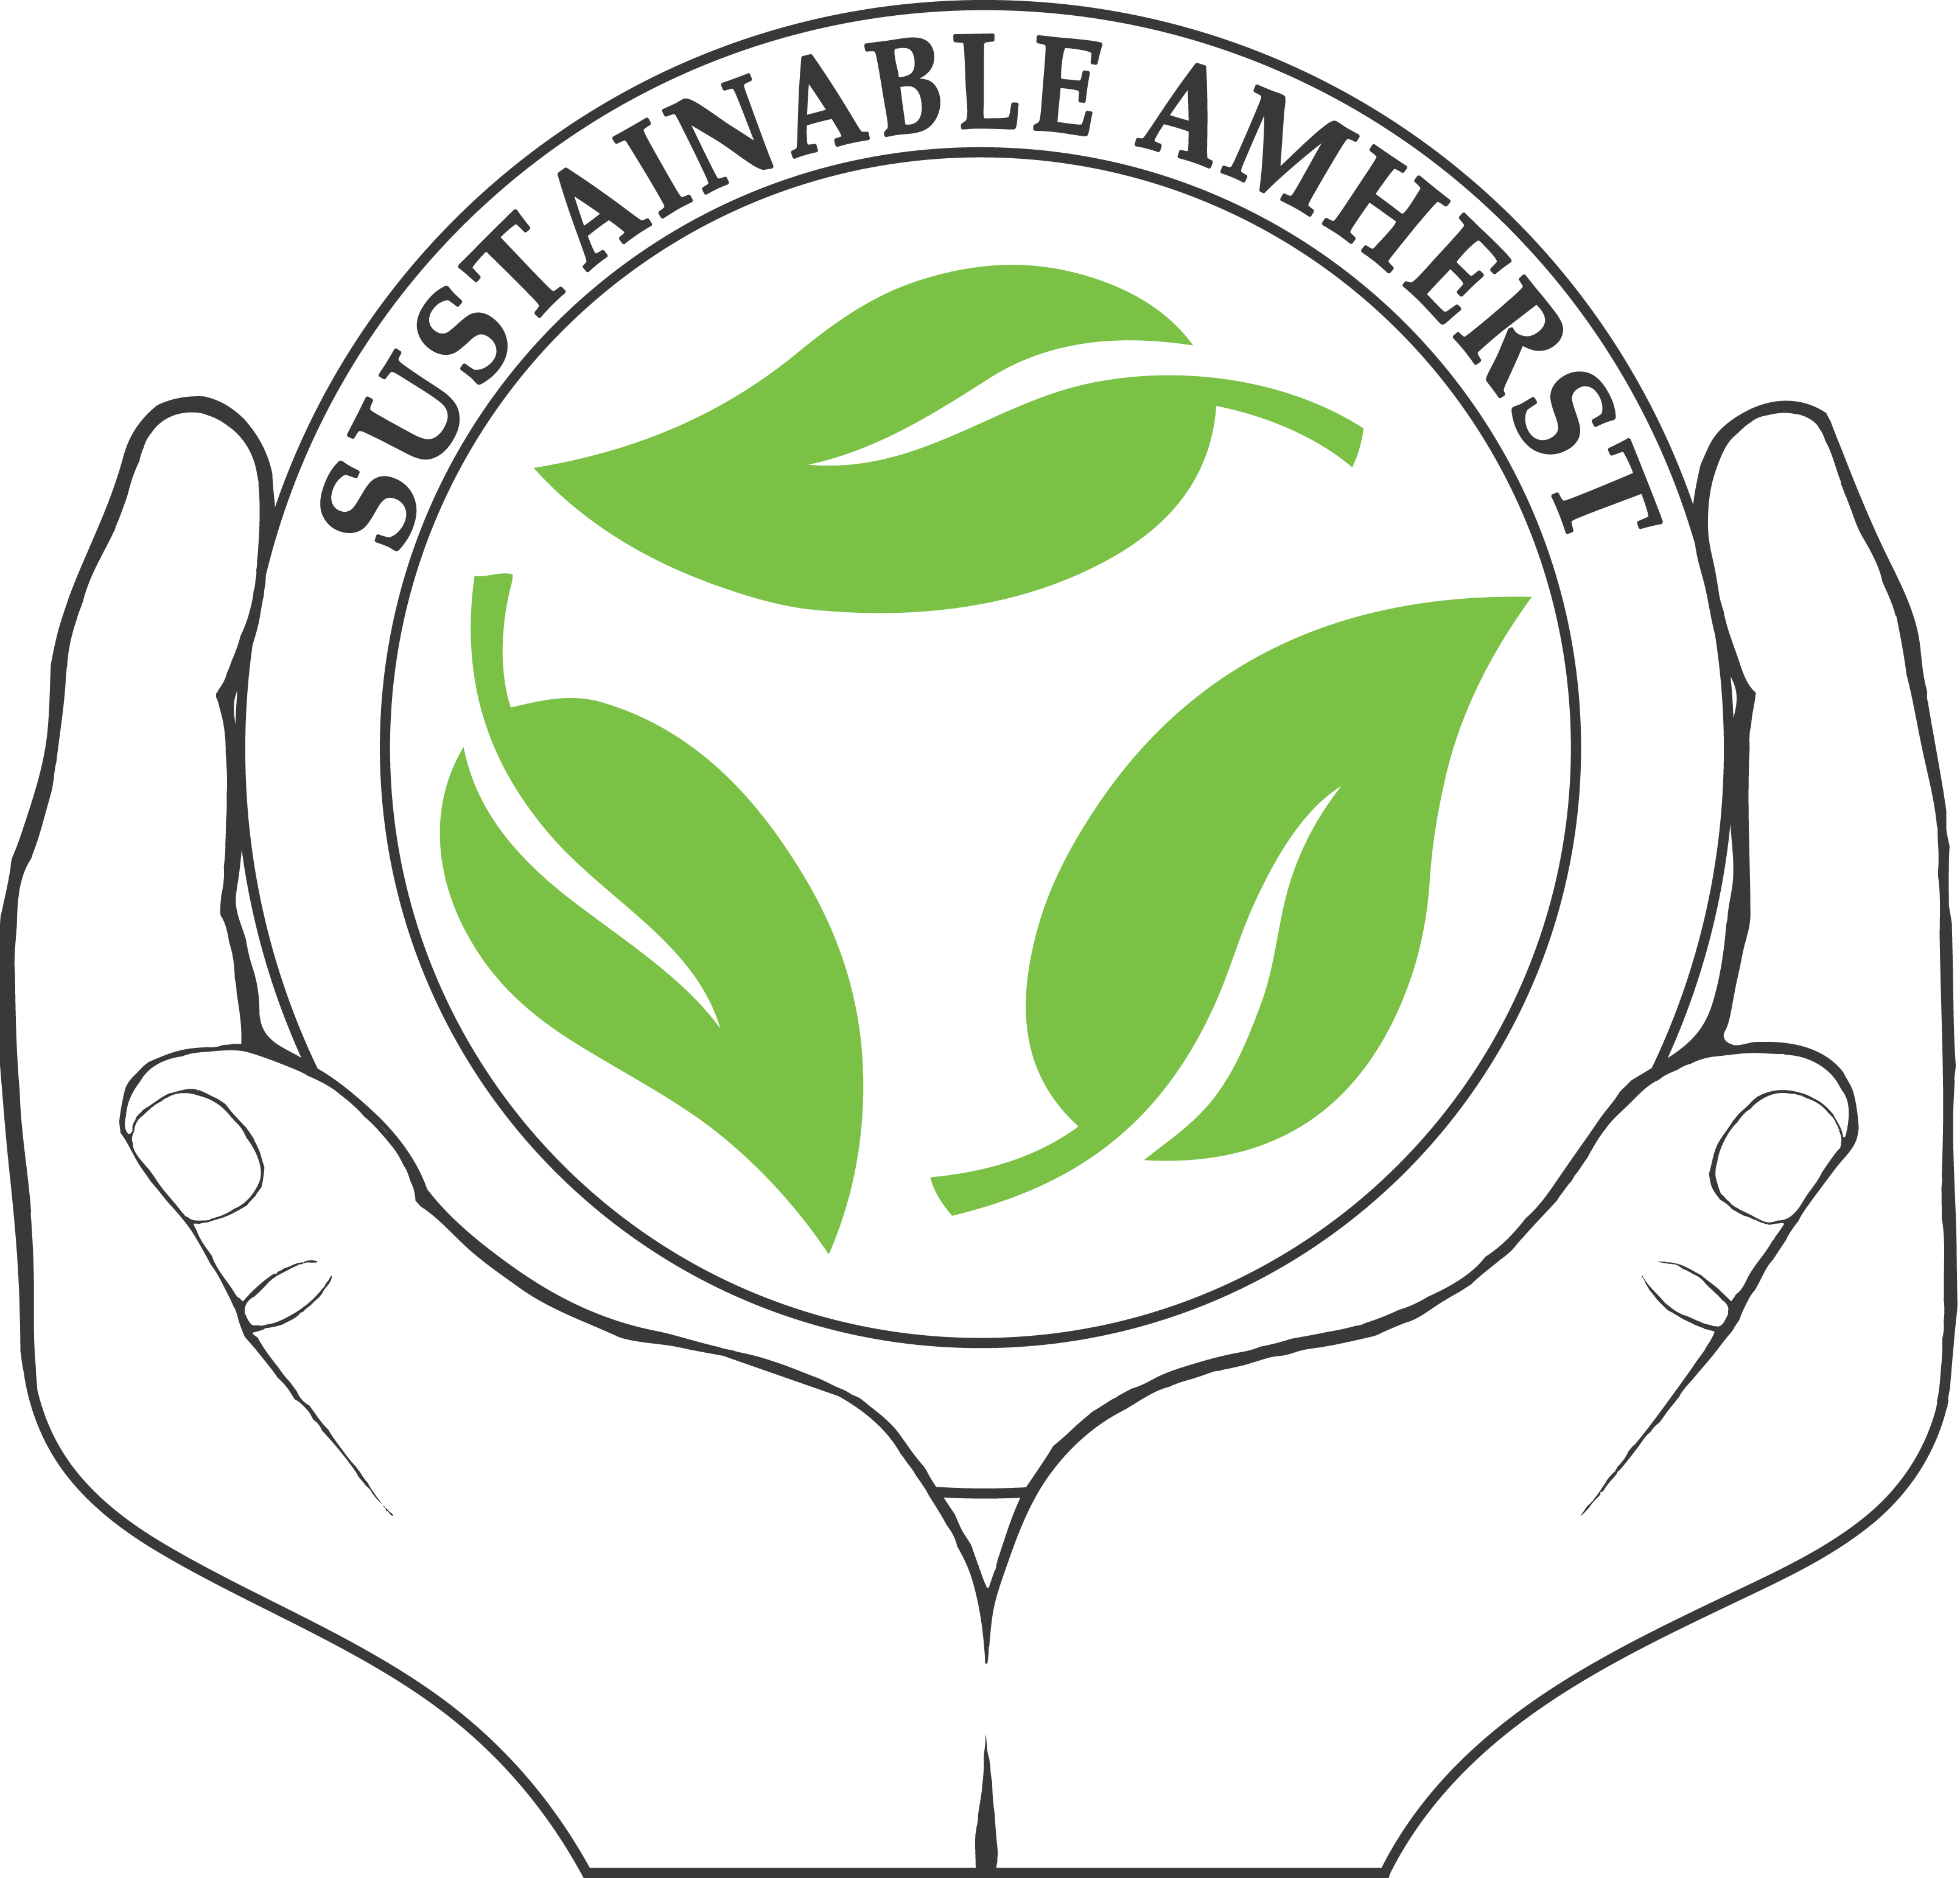 Sustainable Amherst logo.png